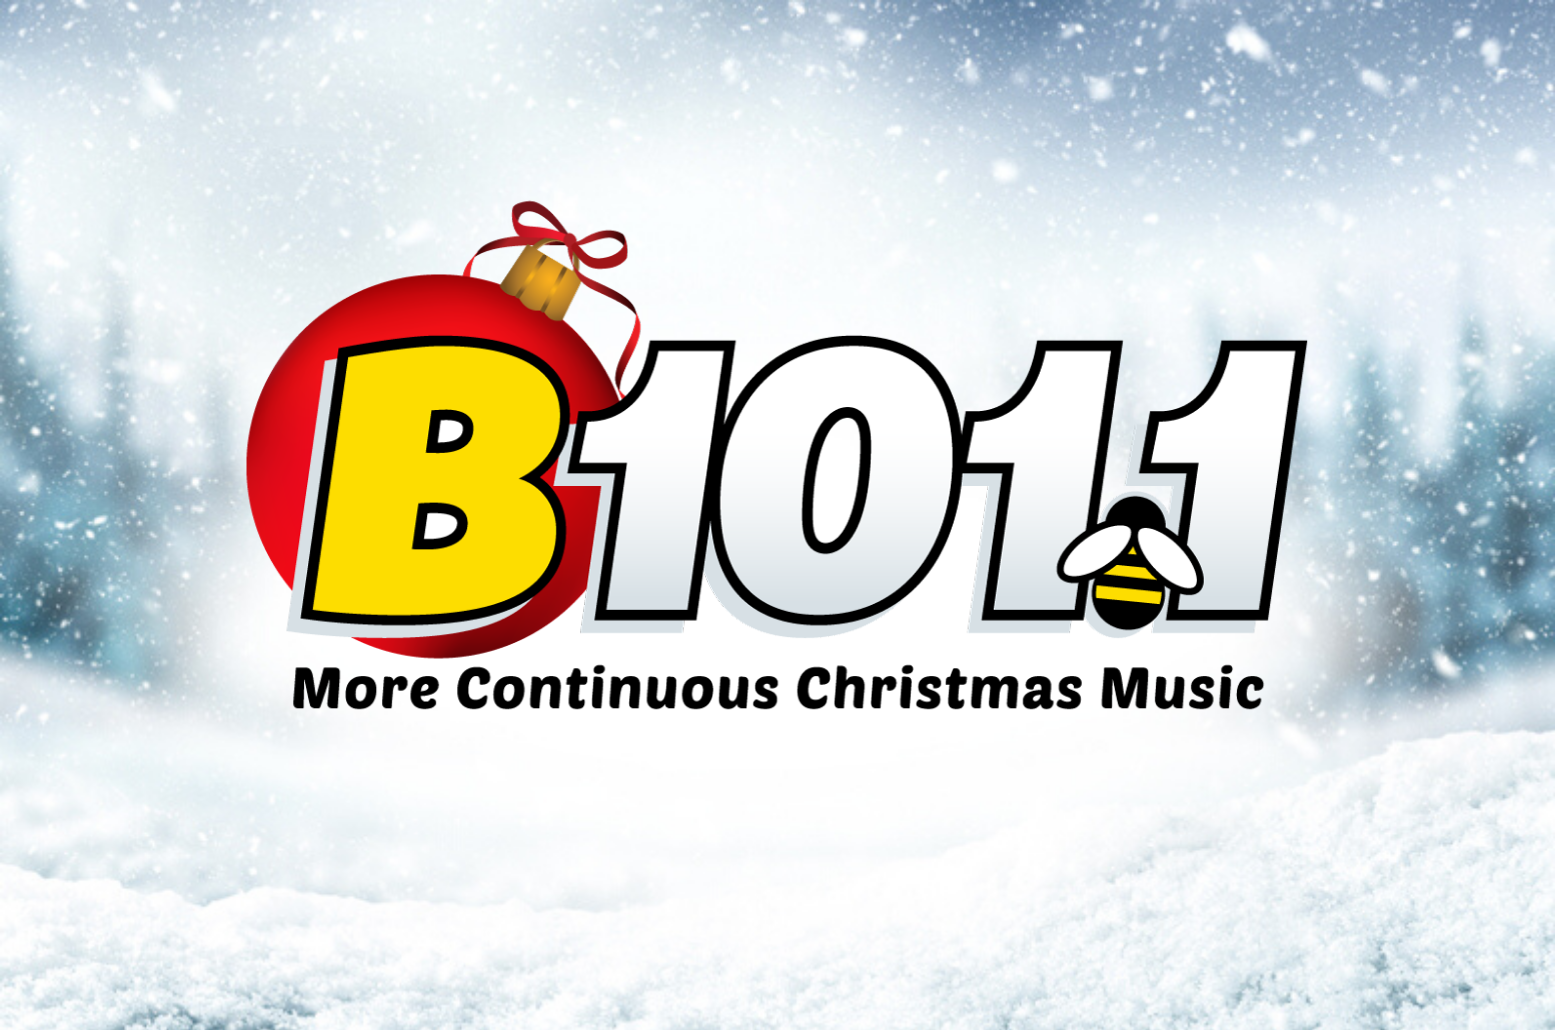 More 101 Christmas Music 2020 How to listen to B101 Philly's Christmas music on B101.1 | B101.1